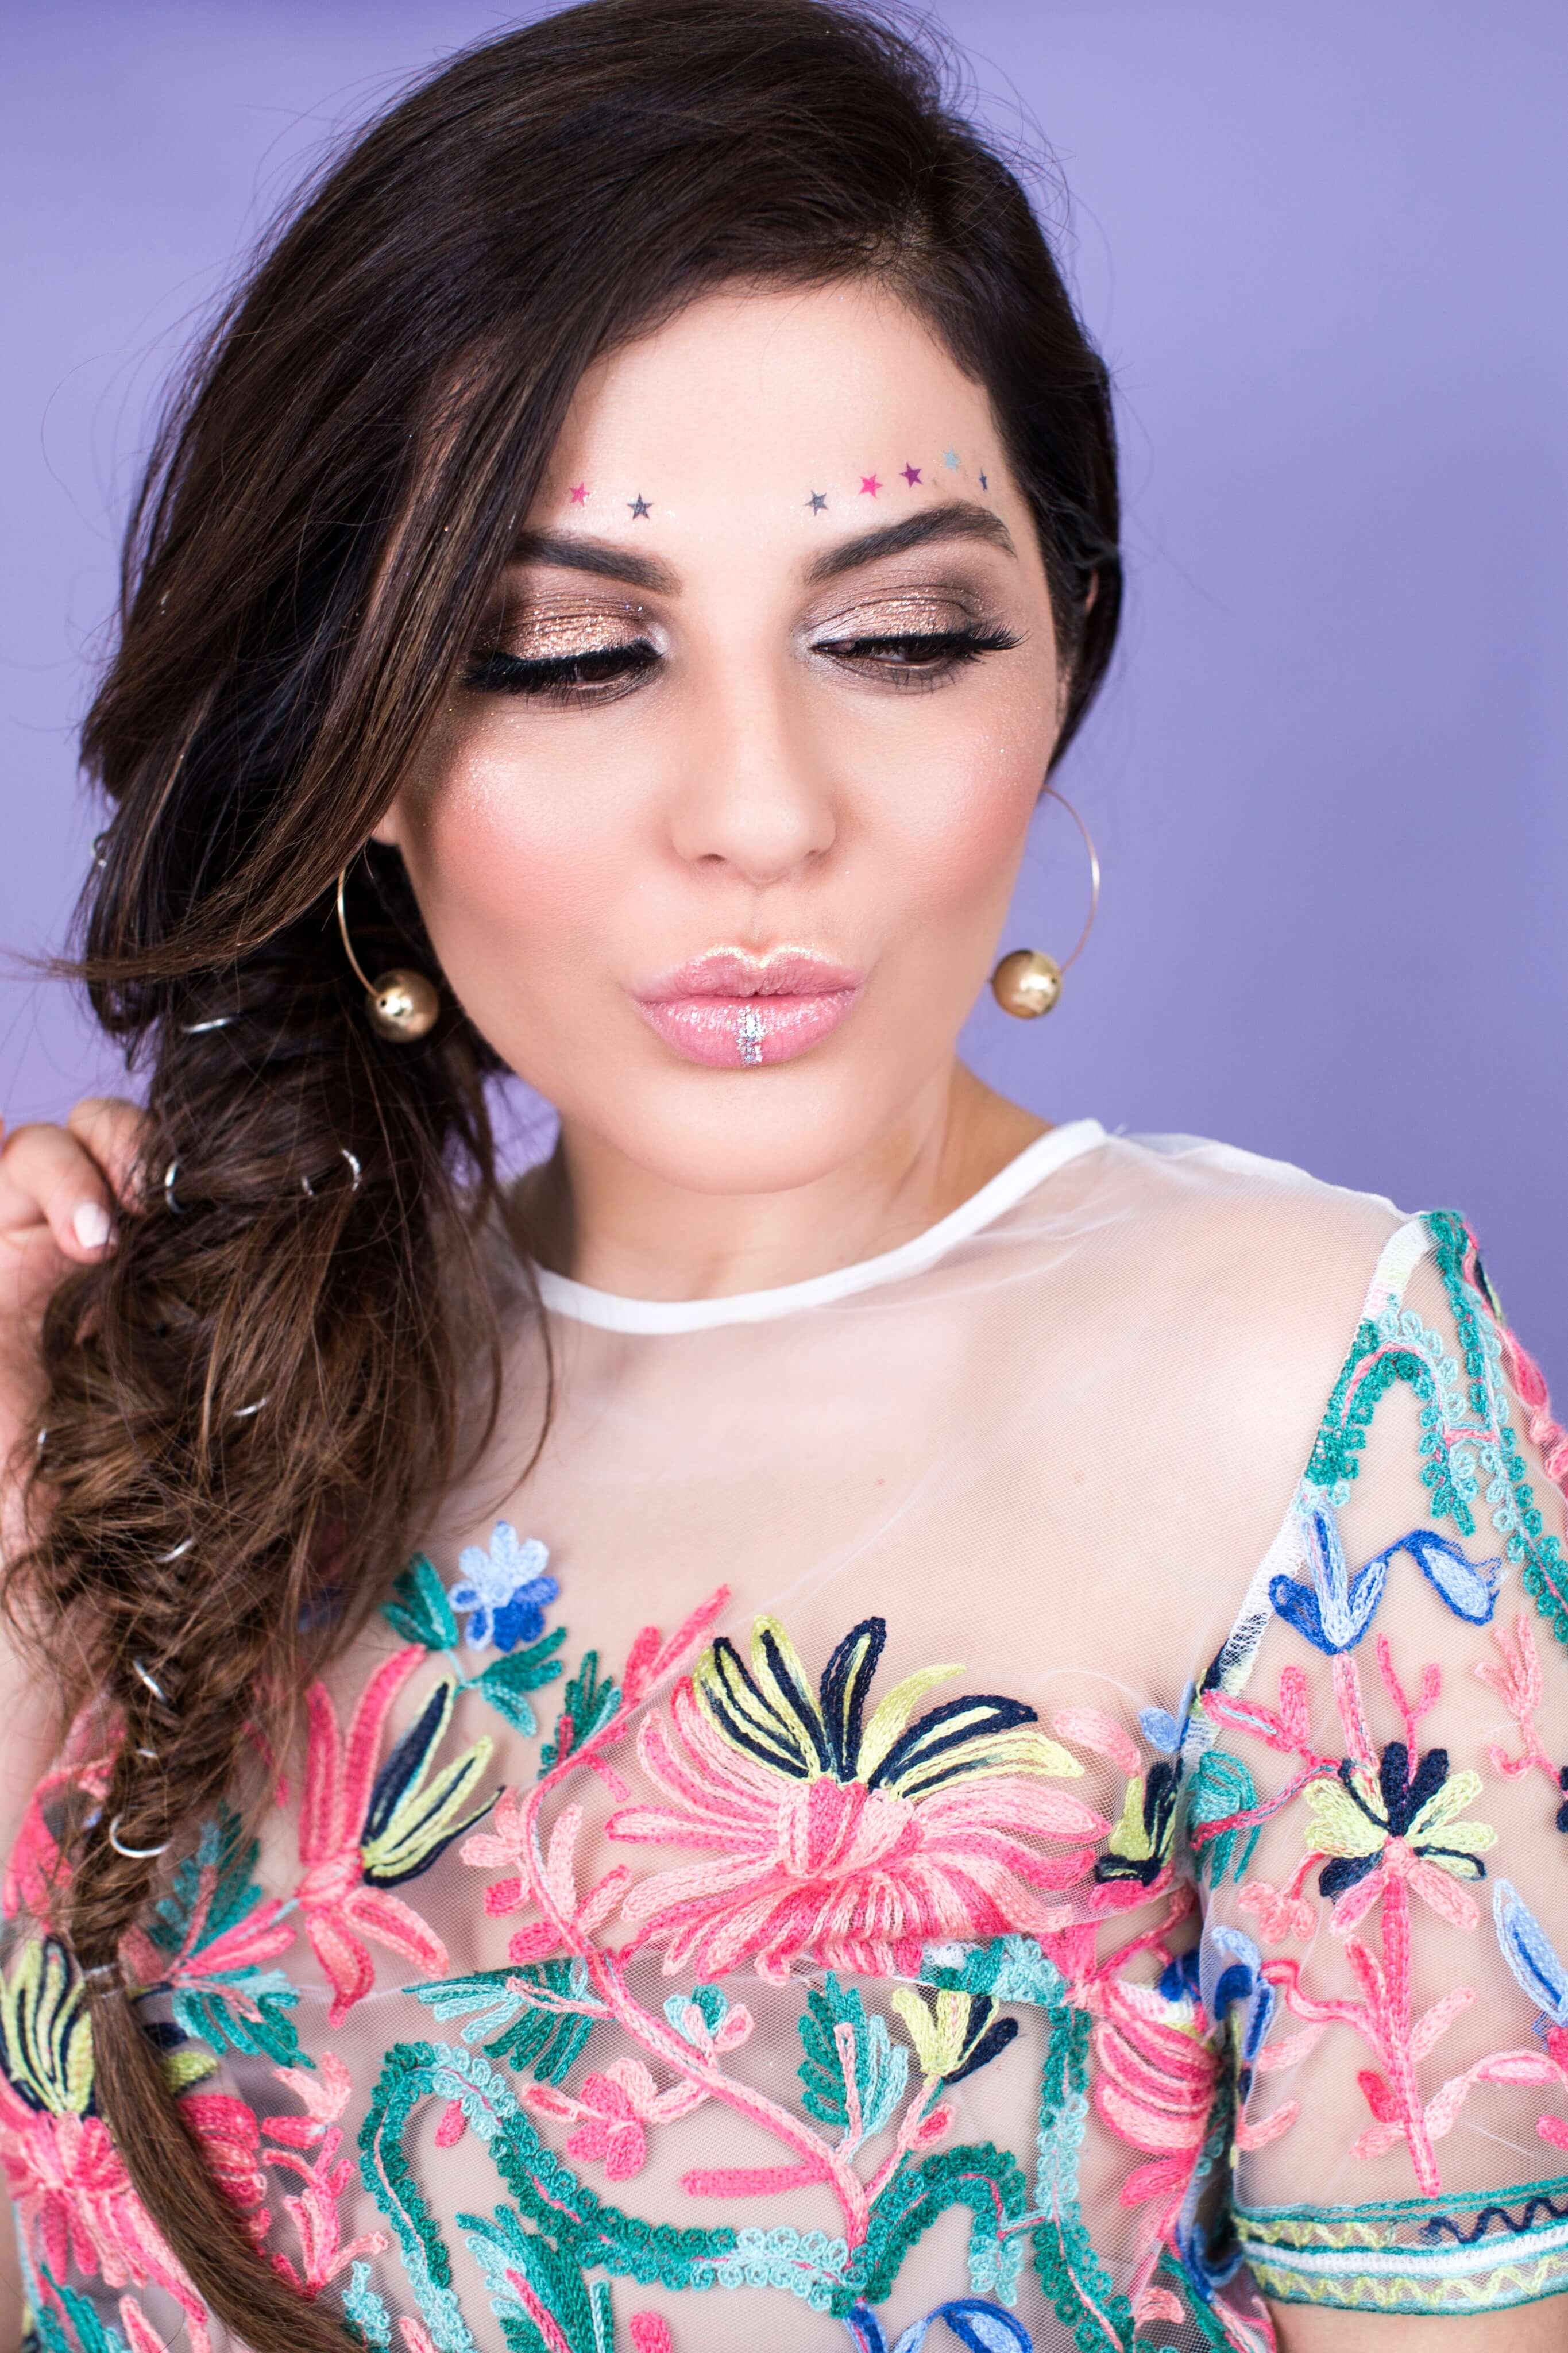 sona gasparian's festival makeup and hair tutorial